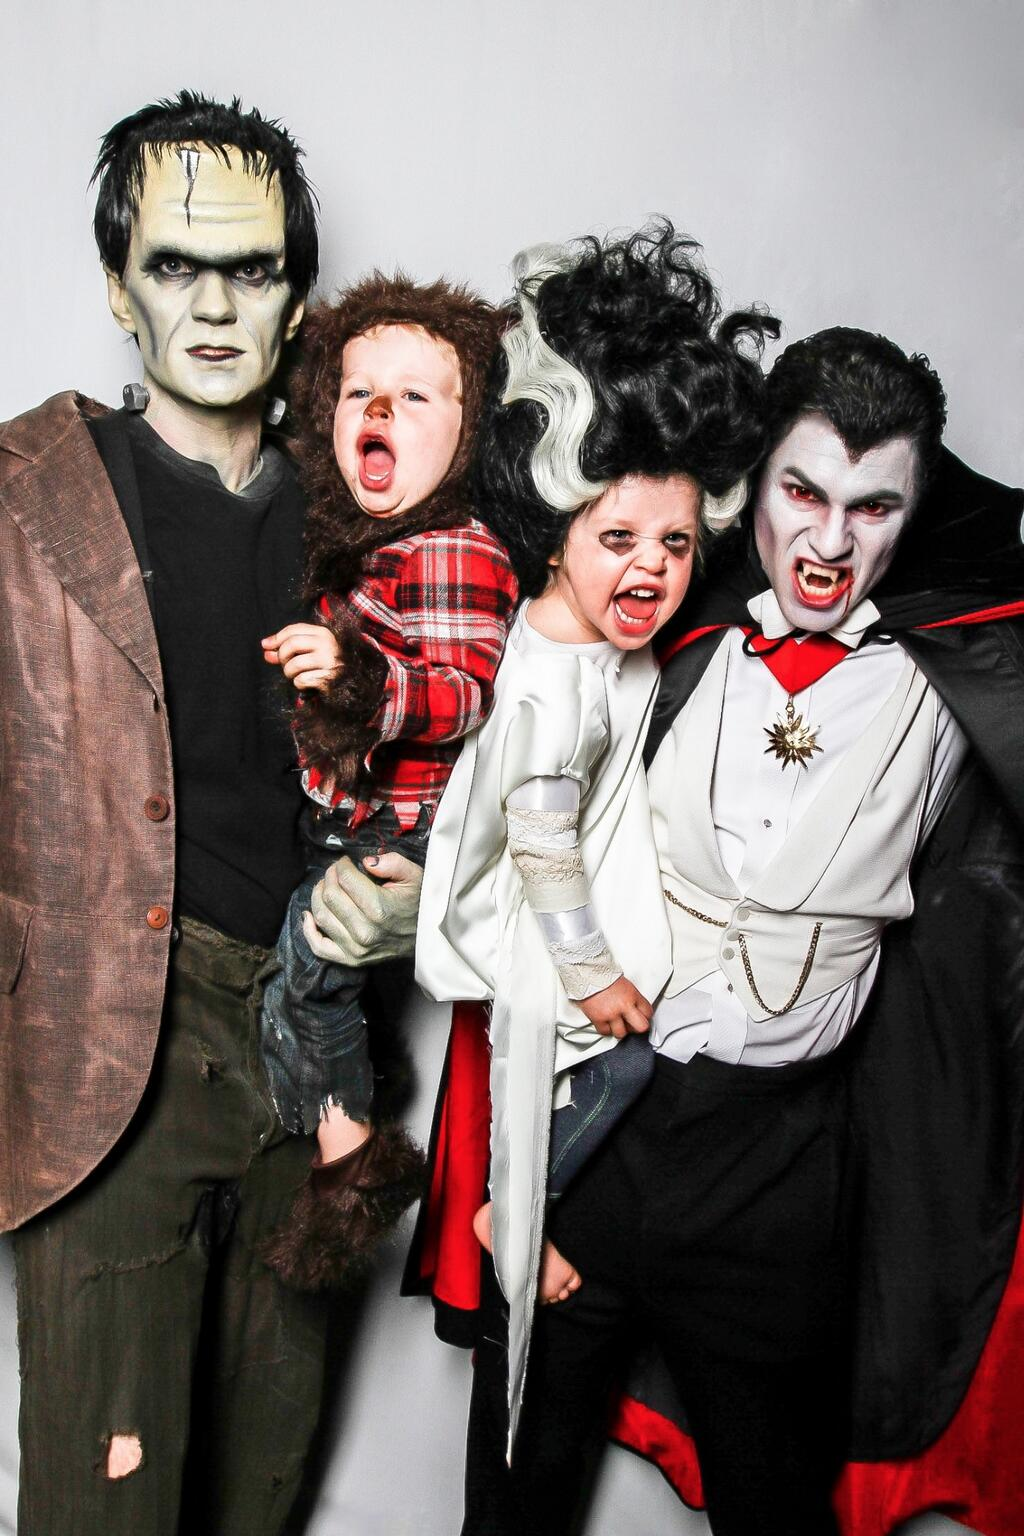 Neil Patrick Harris and his husband David Burtka dressed as Frankenstein and Dracula while their twins, Gideon and Harper, w